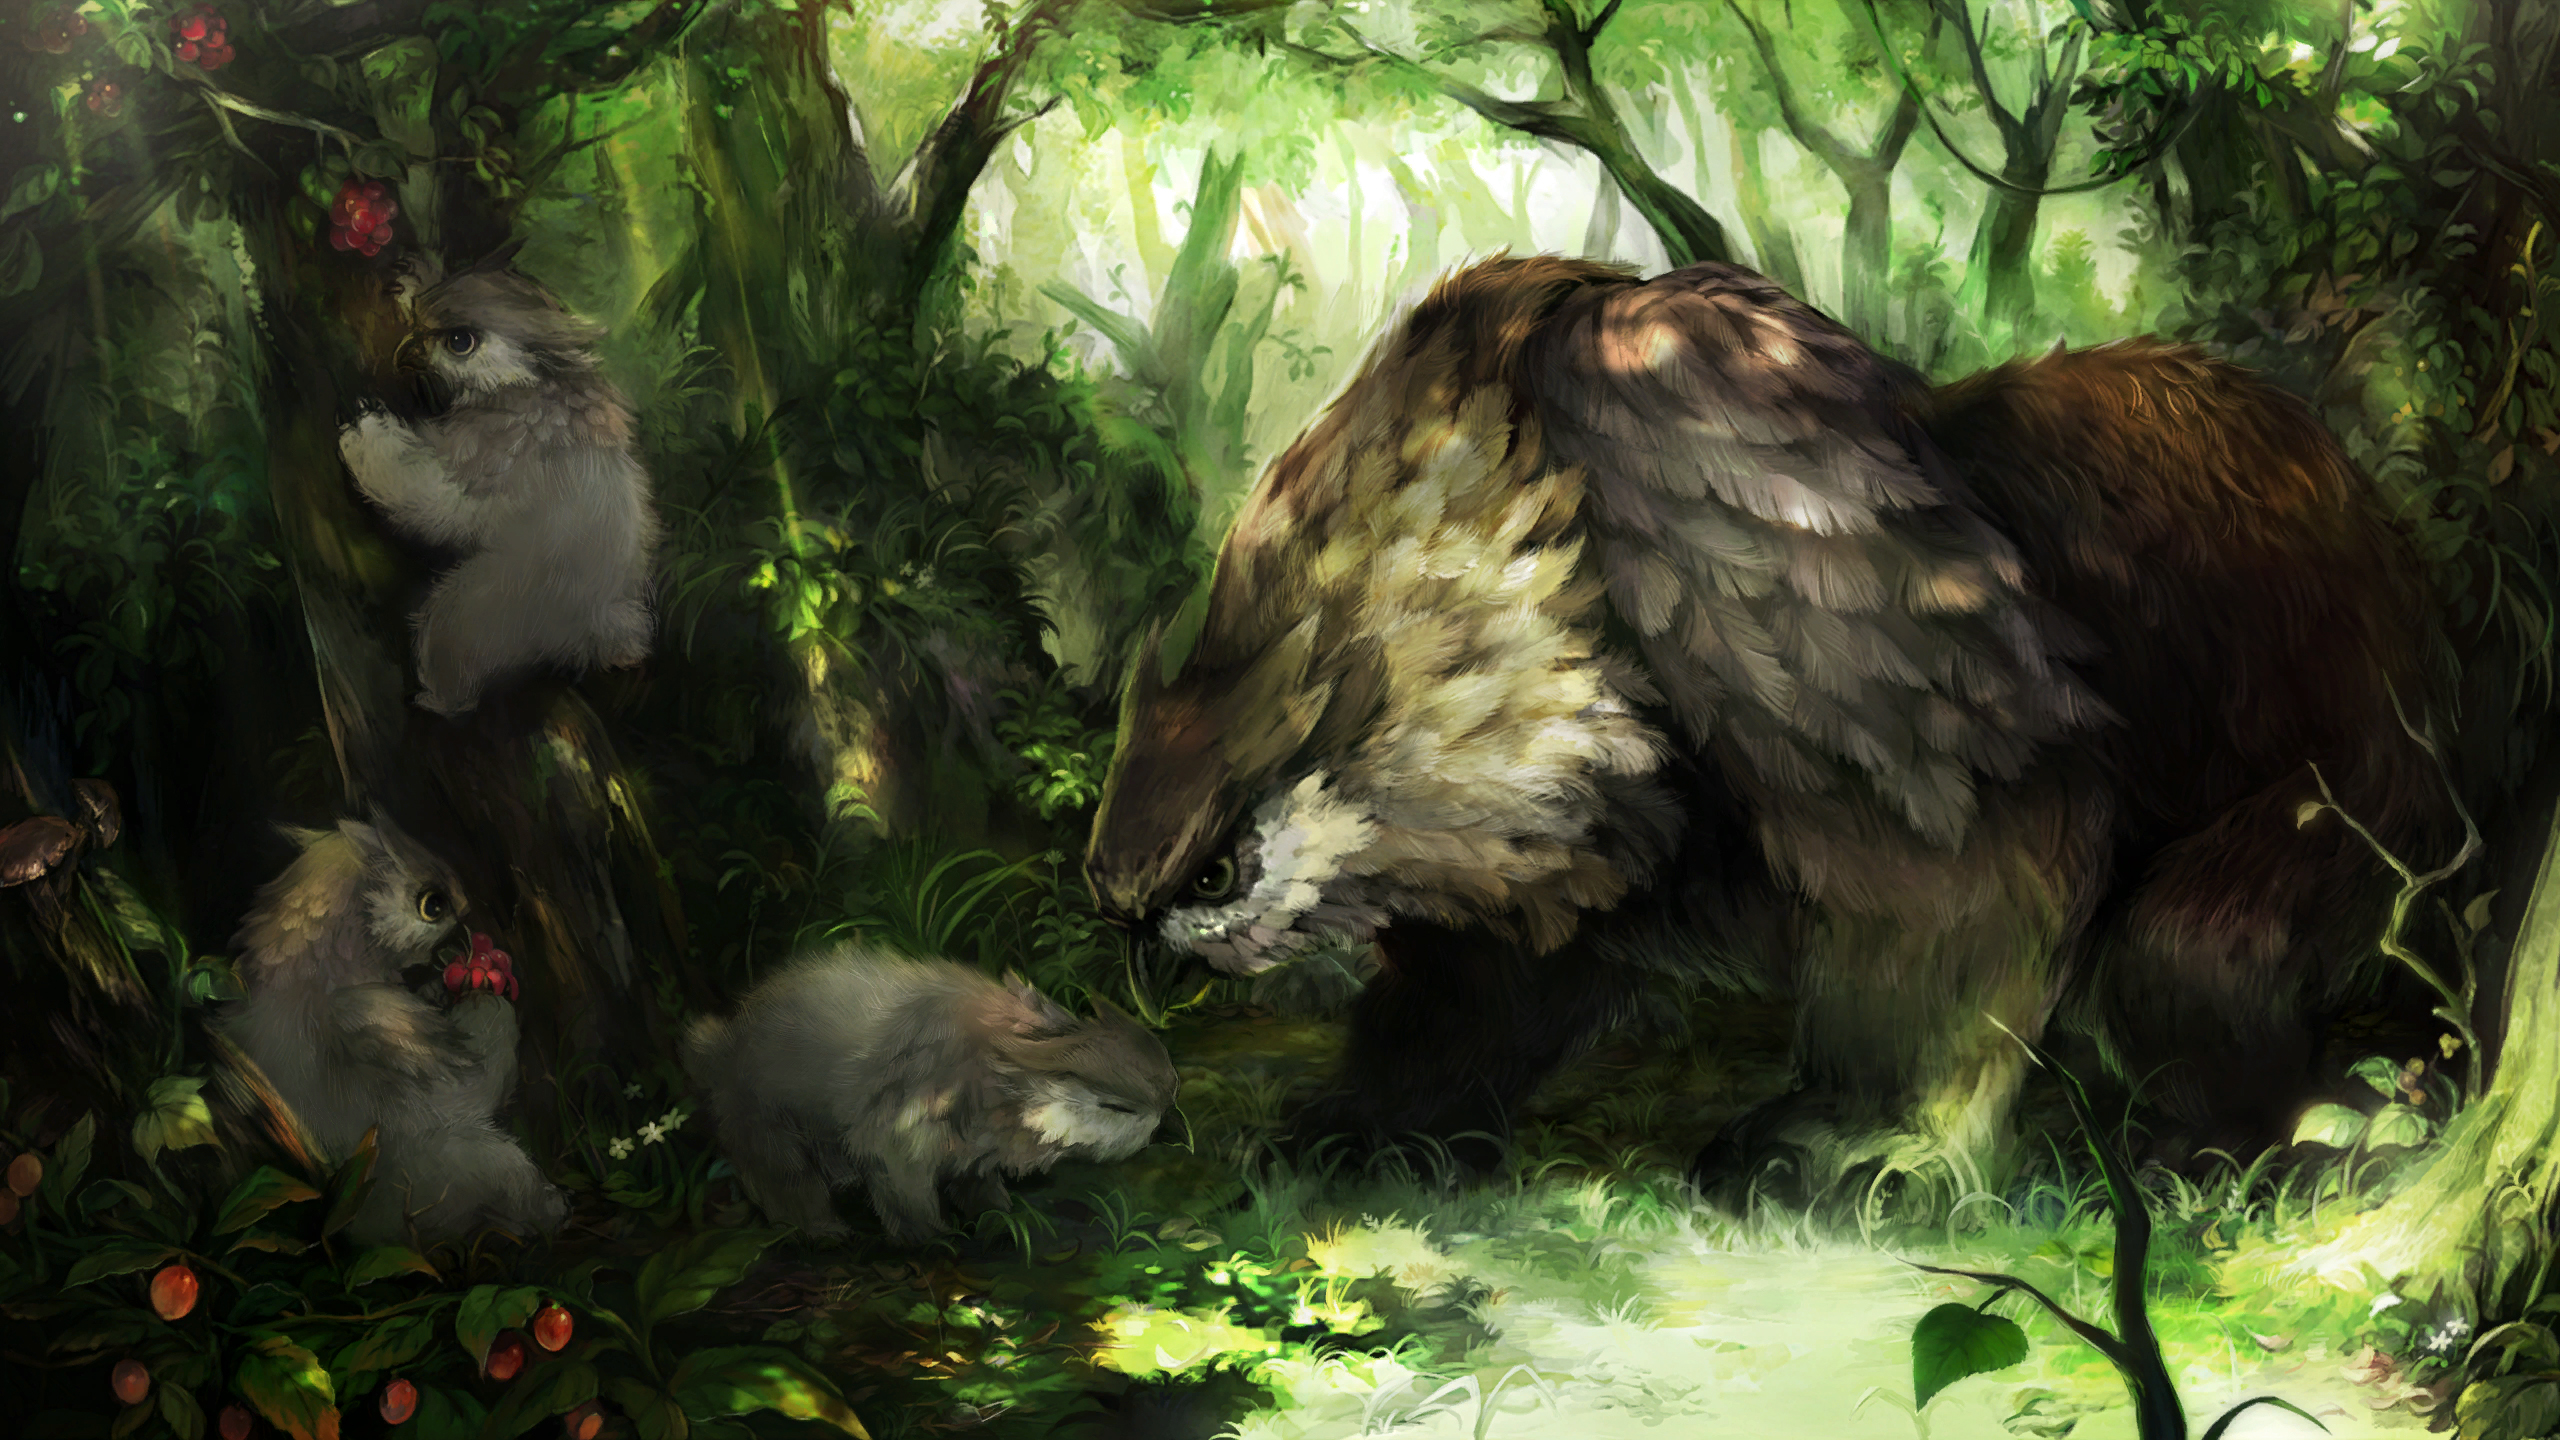 owlbear-and-cub.jpg